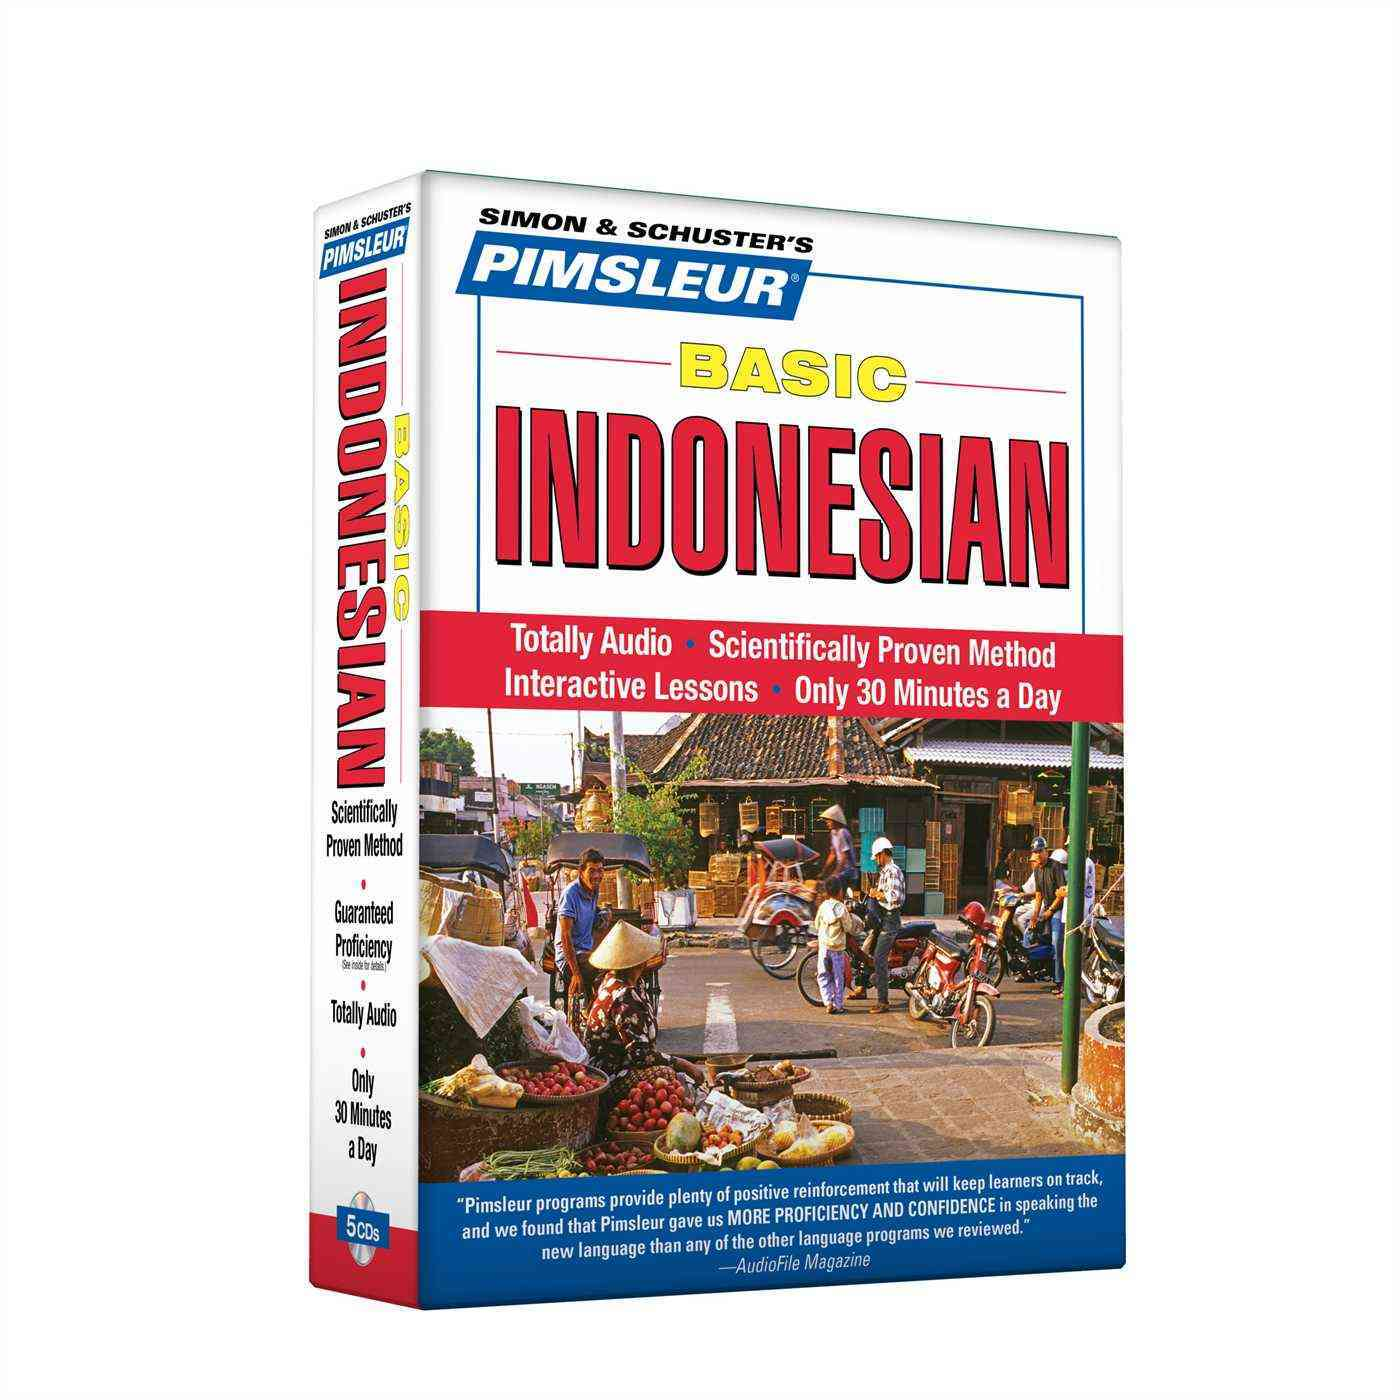 [CD] Basic Indonesian By Pimsleur (COR)